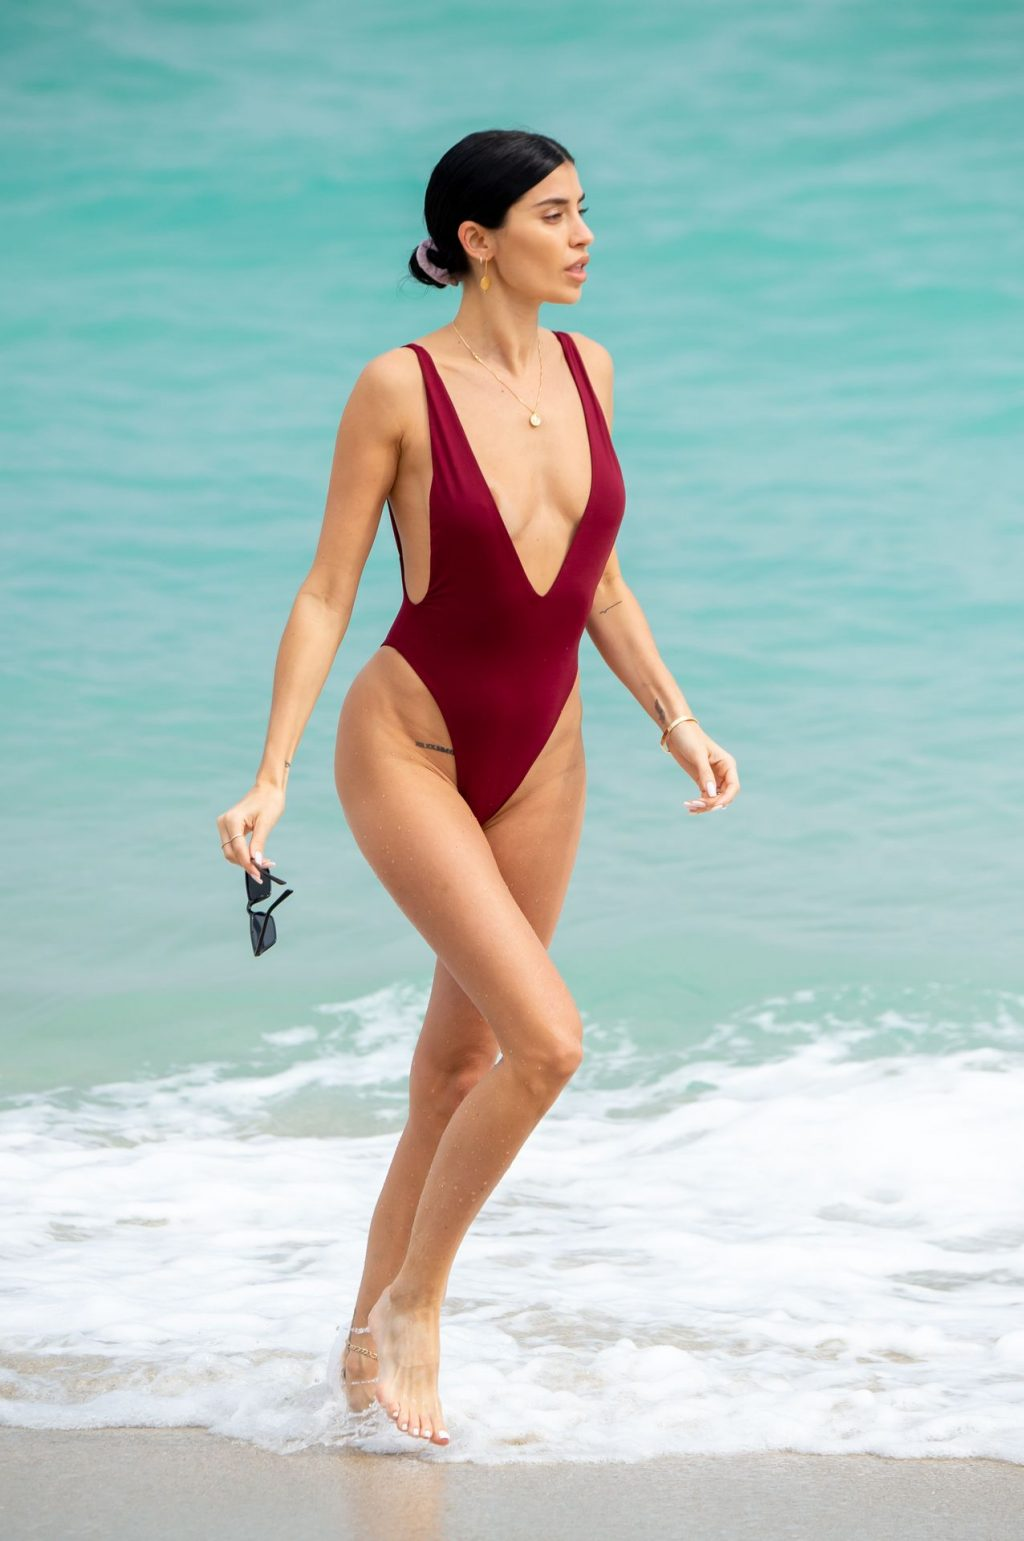 Nicole Williams Shows Off Her Amazing Curves in Miami (27 Photos)